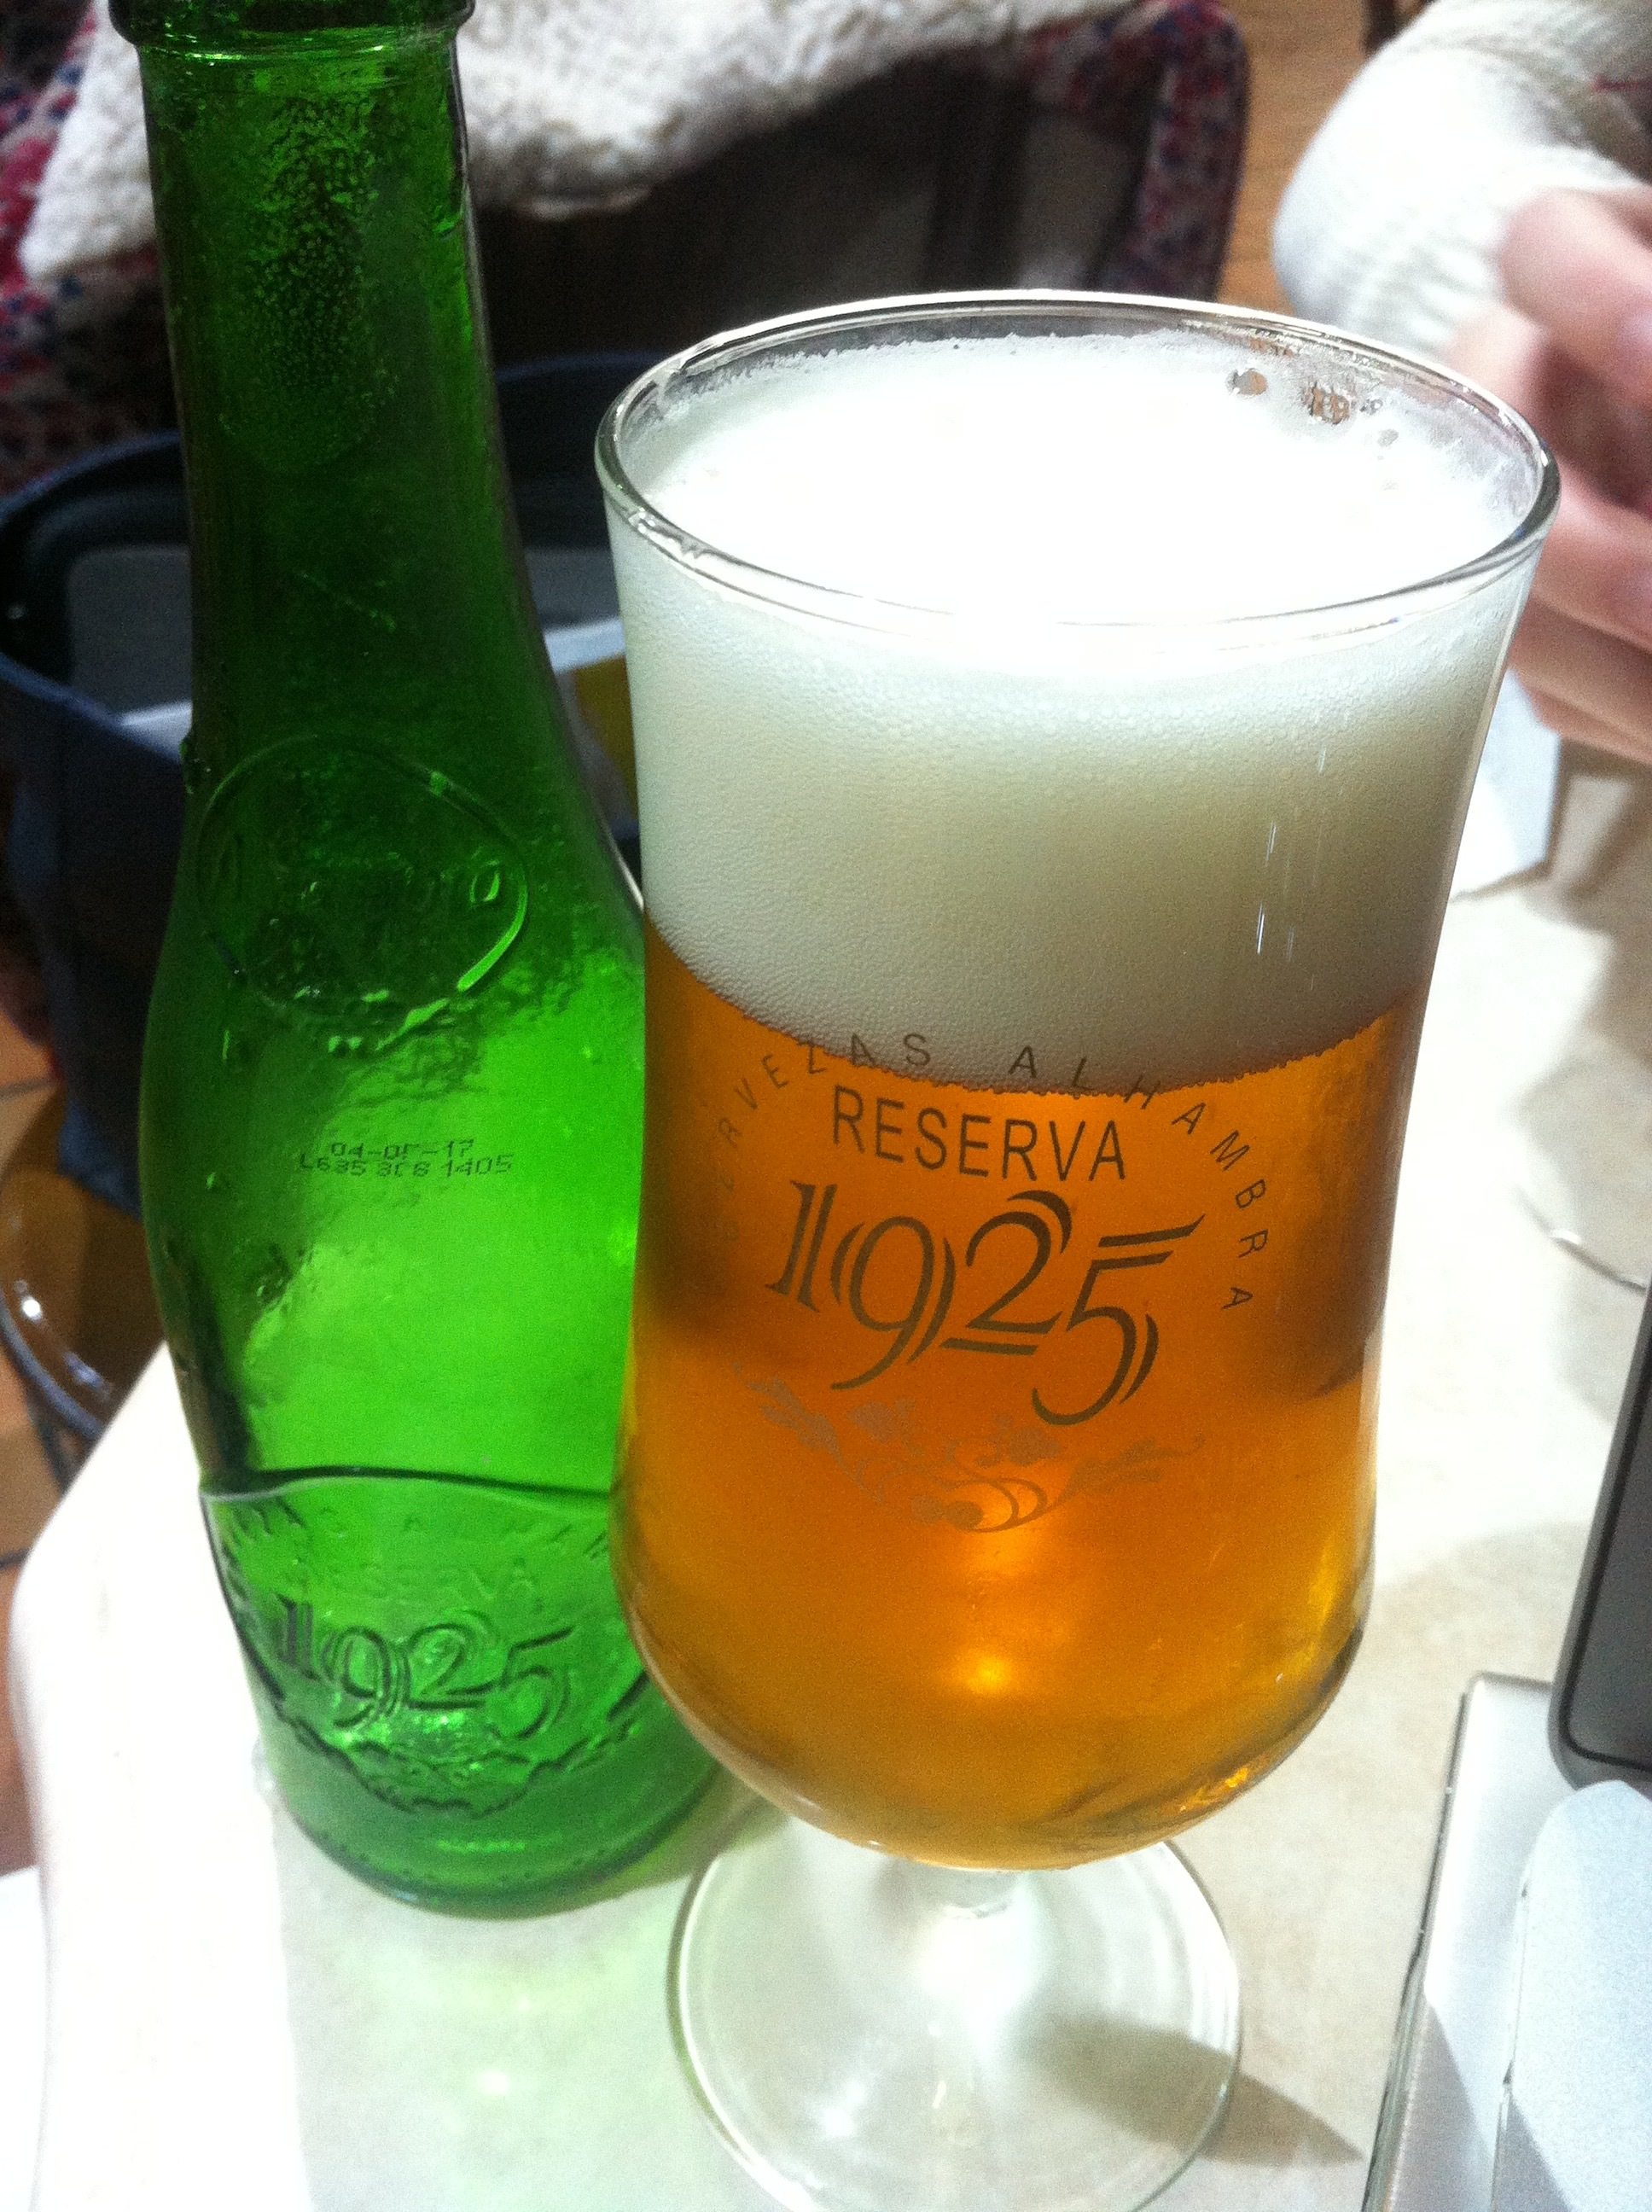 Alhambra's 1925 is a popular bottled beer order in Granada.